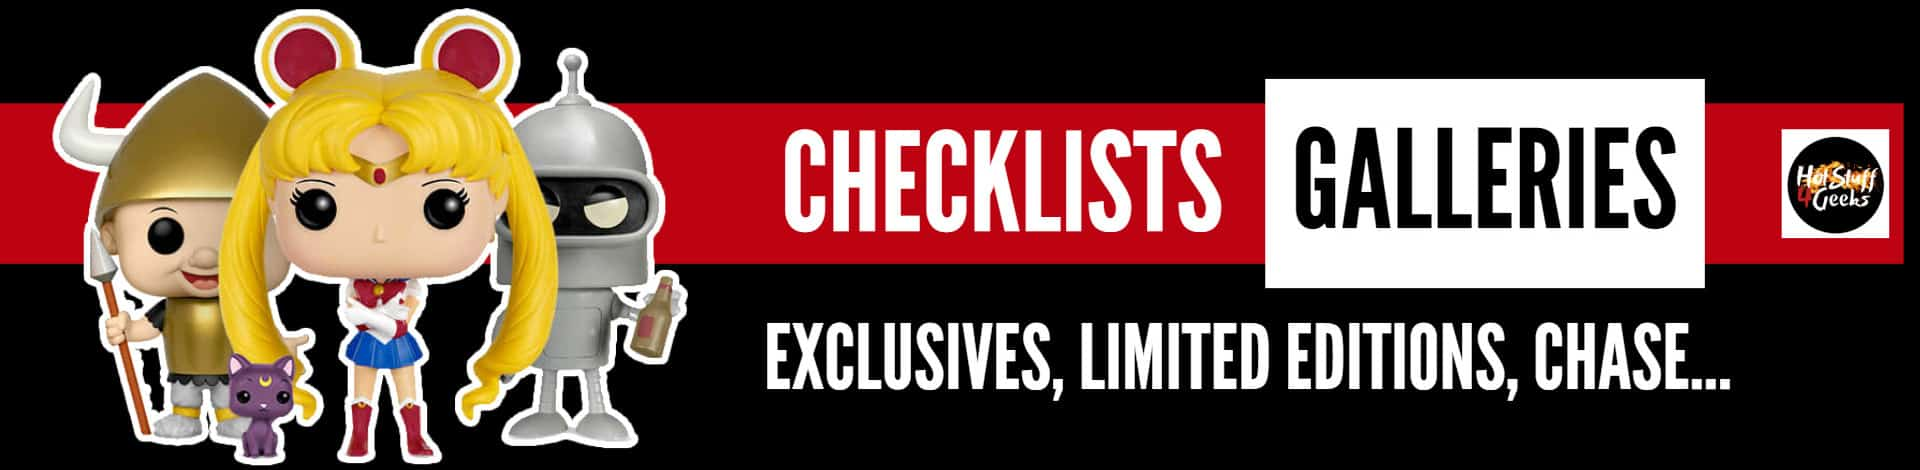 Funko Pop! Checklists, Galleries, Exclusives, Limites Editions and Chase